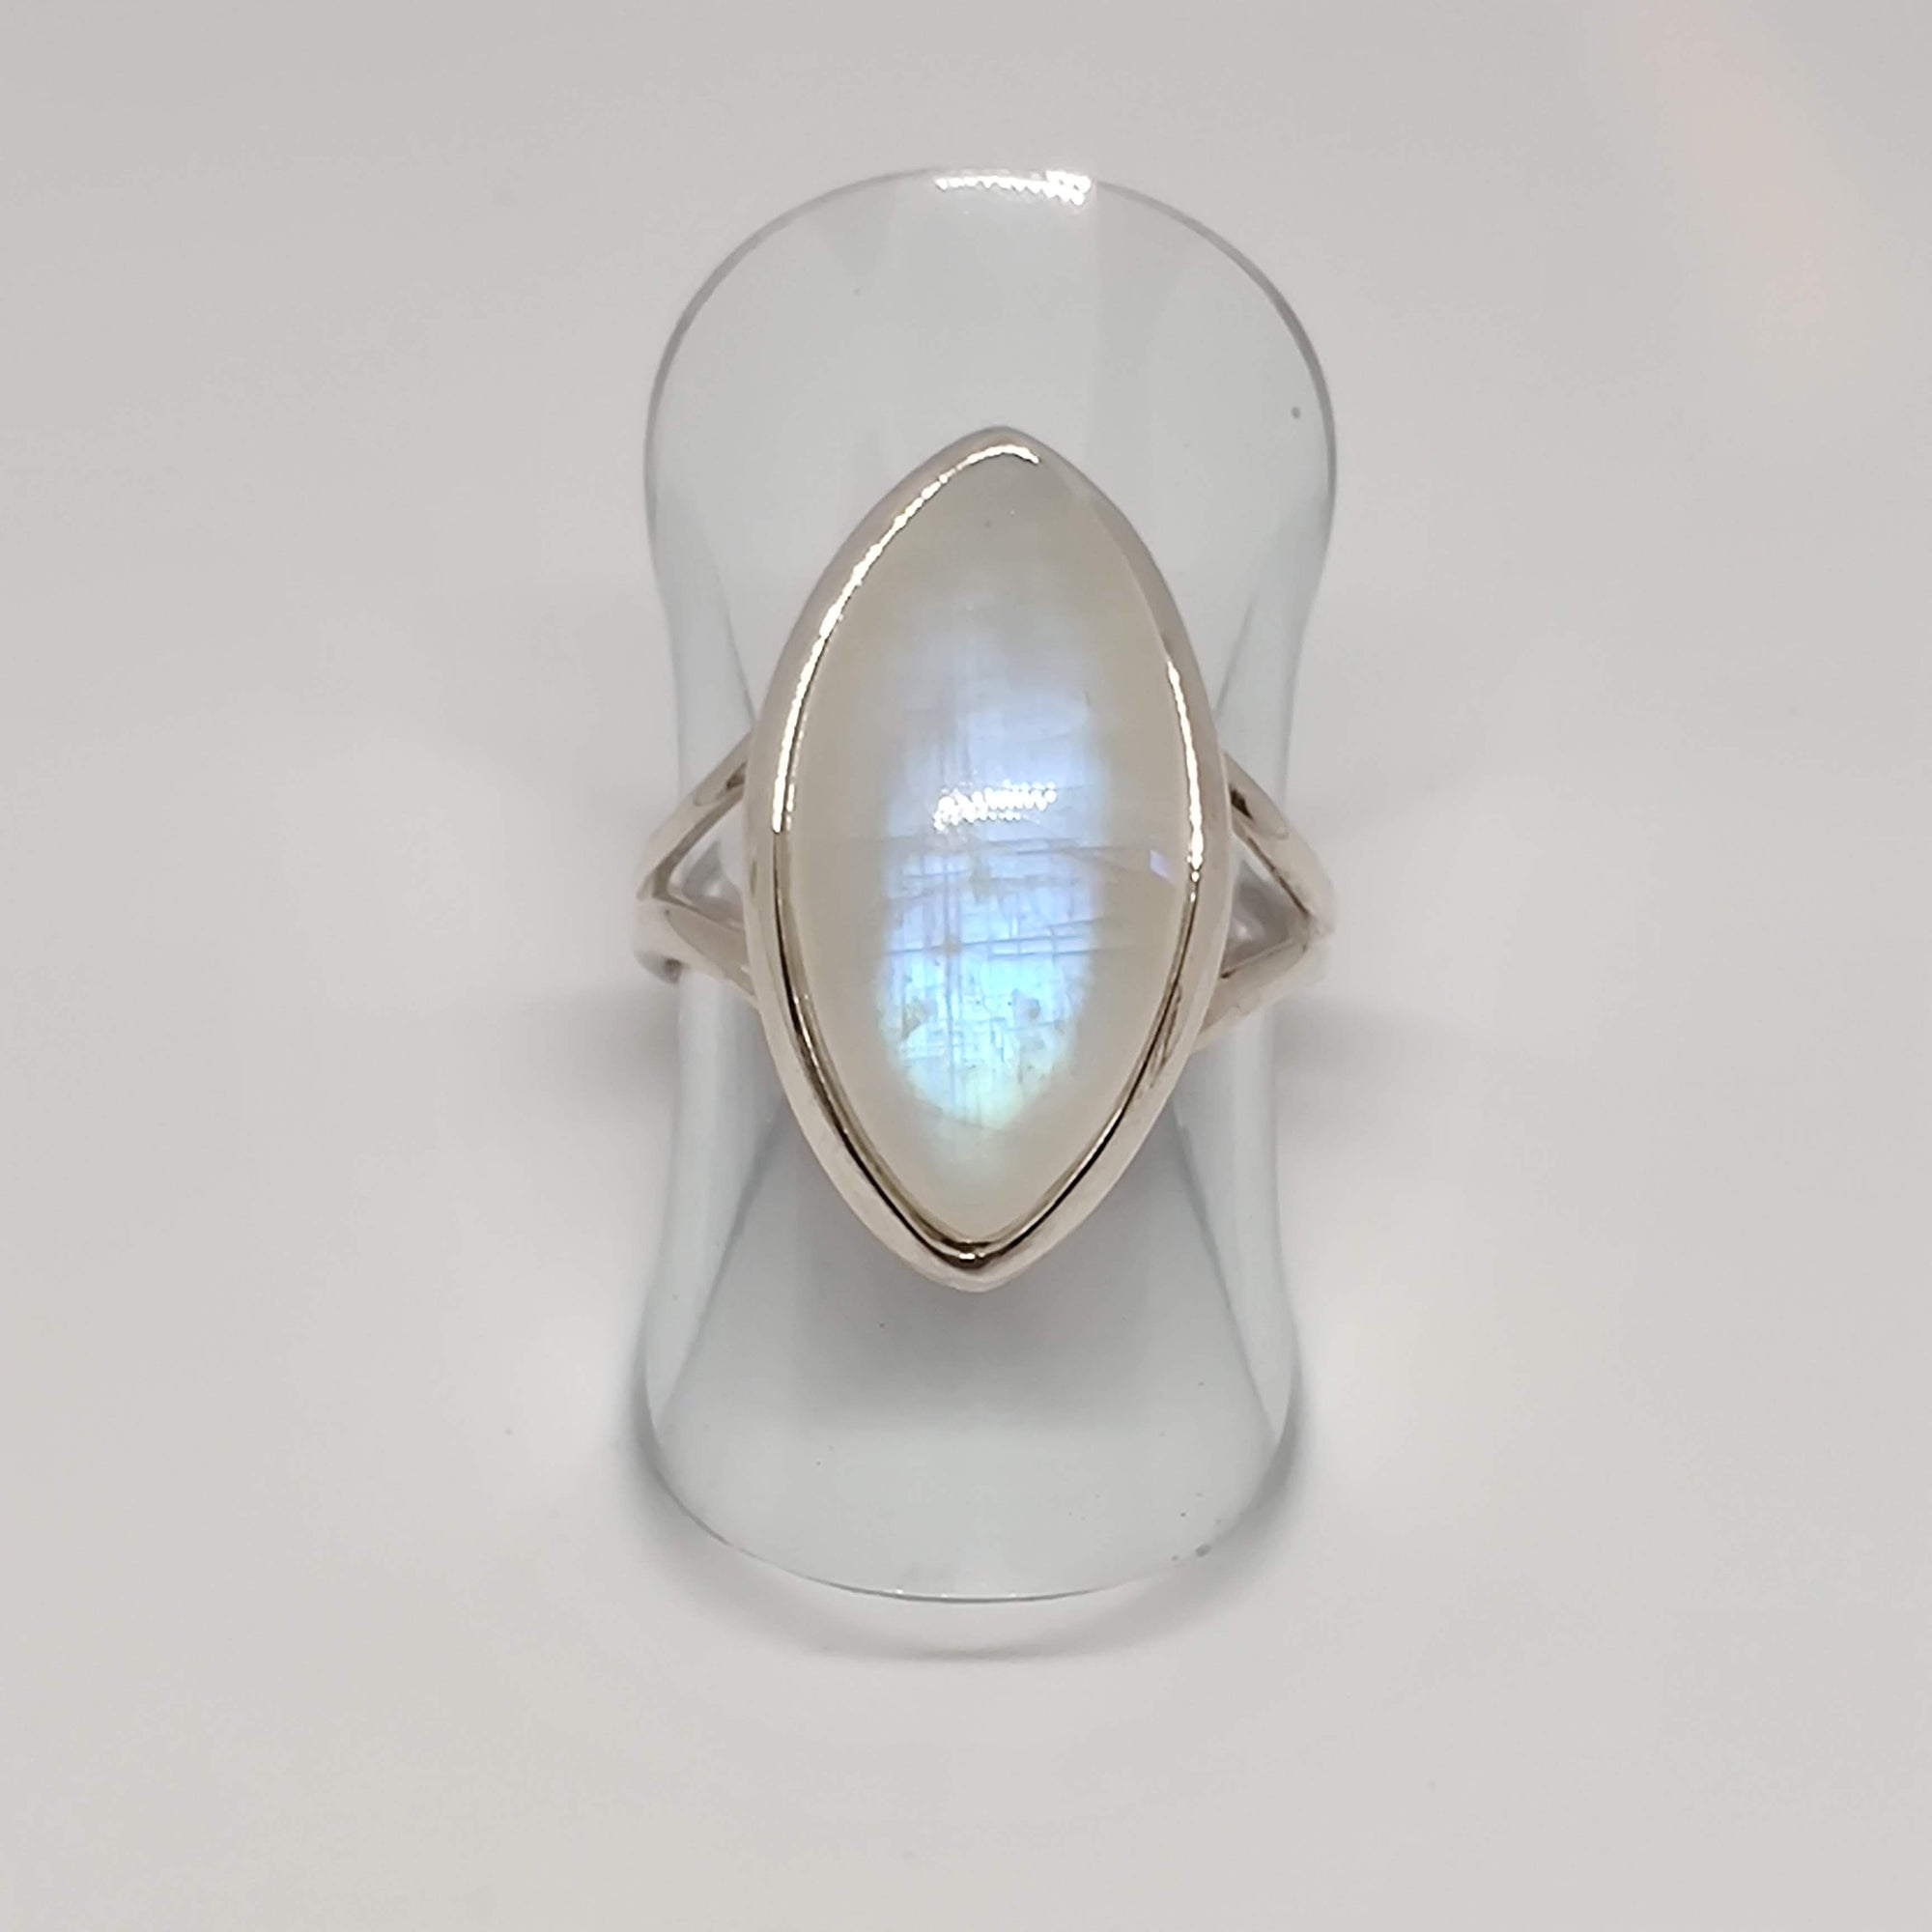 Almond-shaped Moonstone Sterling Silver Ring in bezel setting with split ring - Rivendell Shop NZ